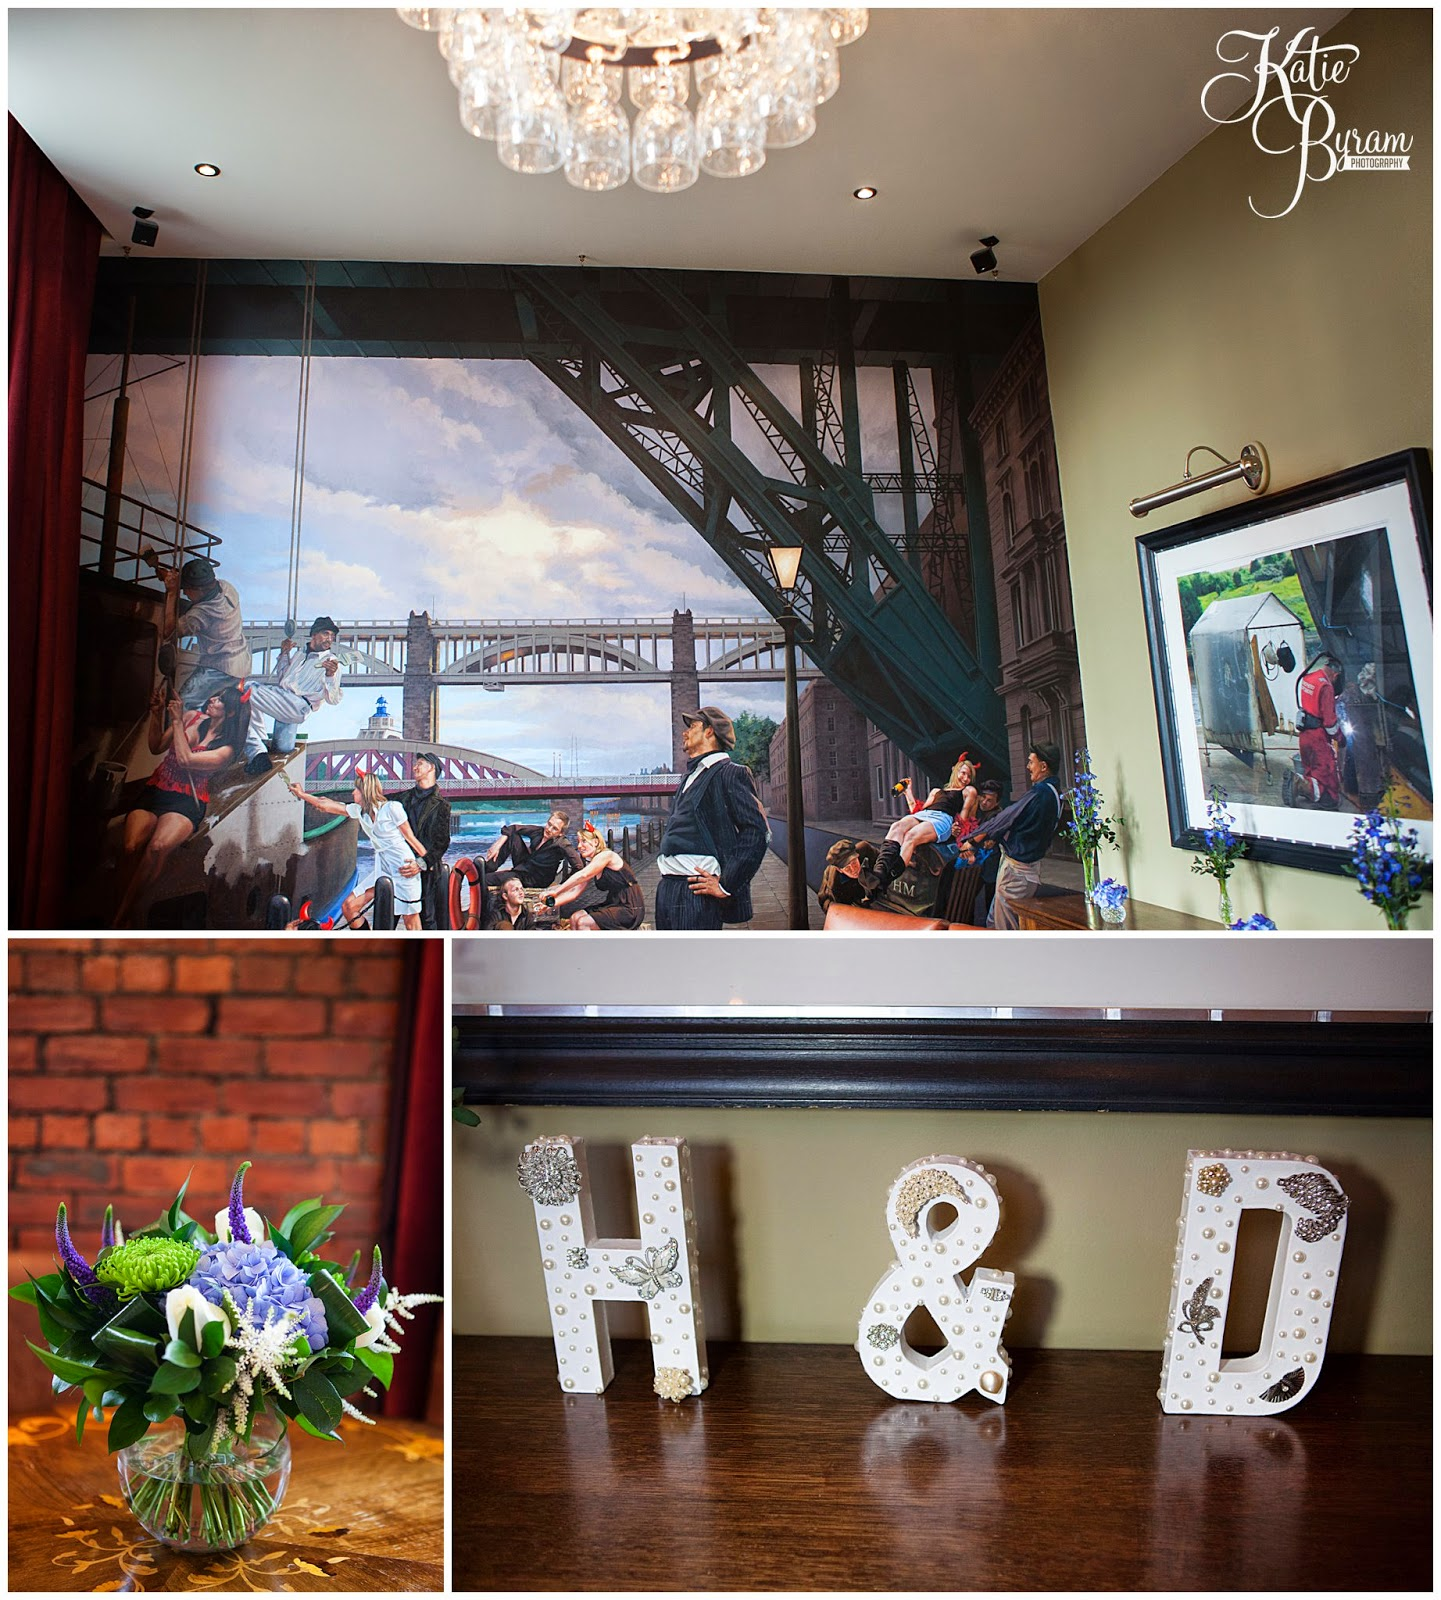 shipyard room at hotel du vin, hotel du vin newcastle, hotel du vin wedding, hotel du vin wedding photographs, hotel du vin newcastle wedding photographs, vintage wedding, small wedding, katie byram photography, newcastle wedding venue, city wedding venue